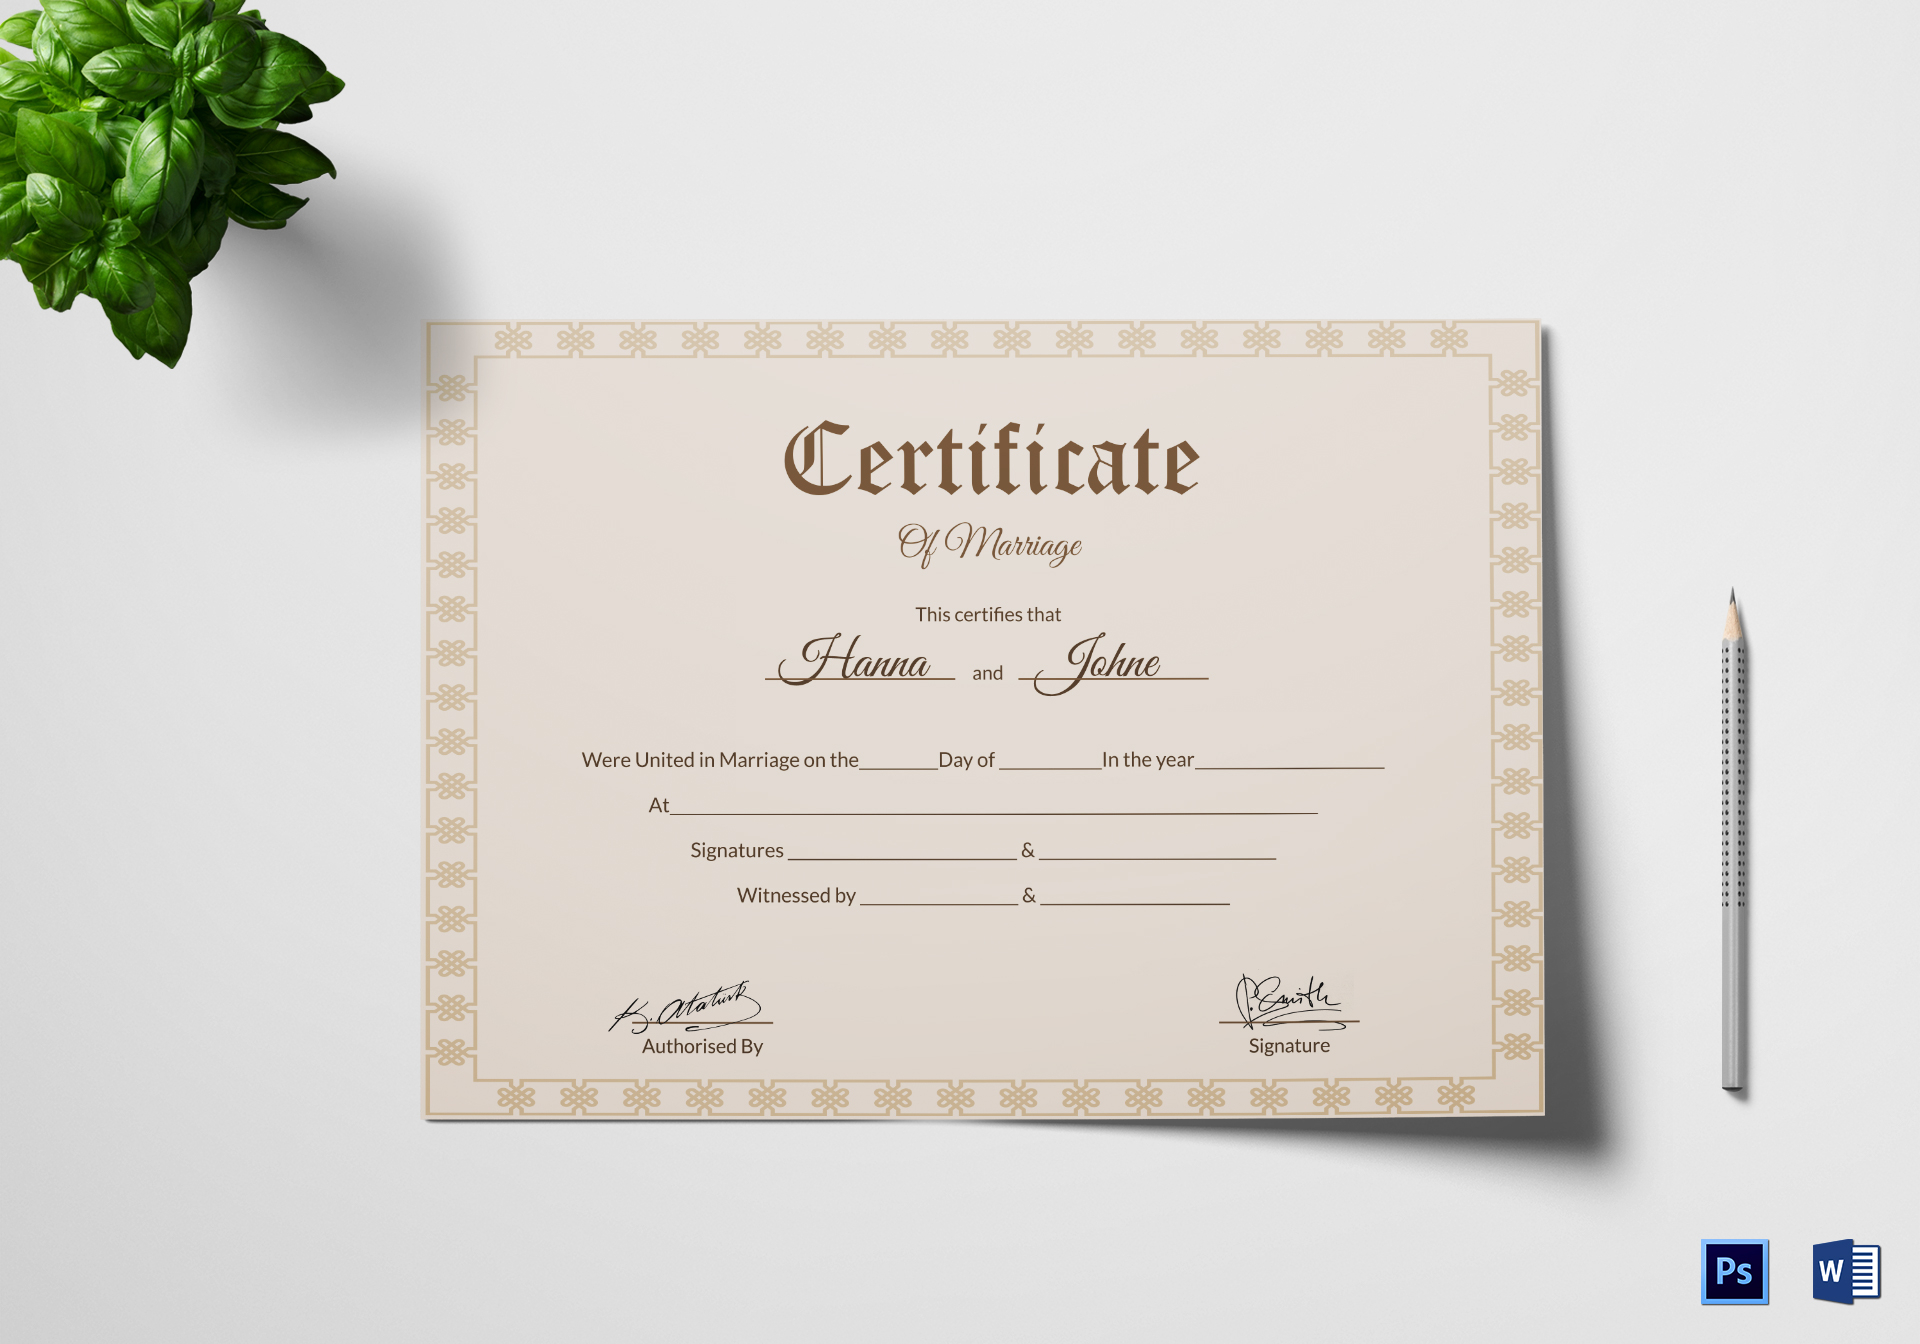 Vintage Marriage Certificate Design Template In Psd Word: Simple Marriage Certificate Design Template In PSD, Word